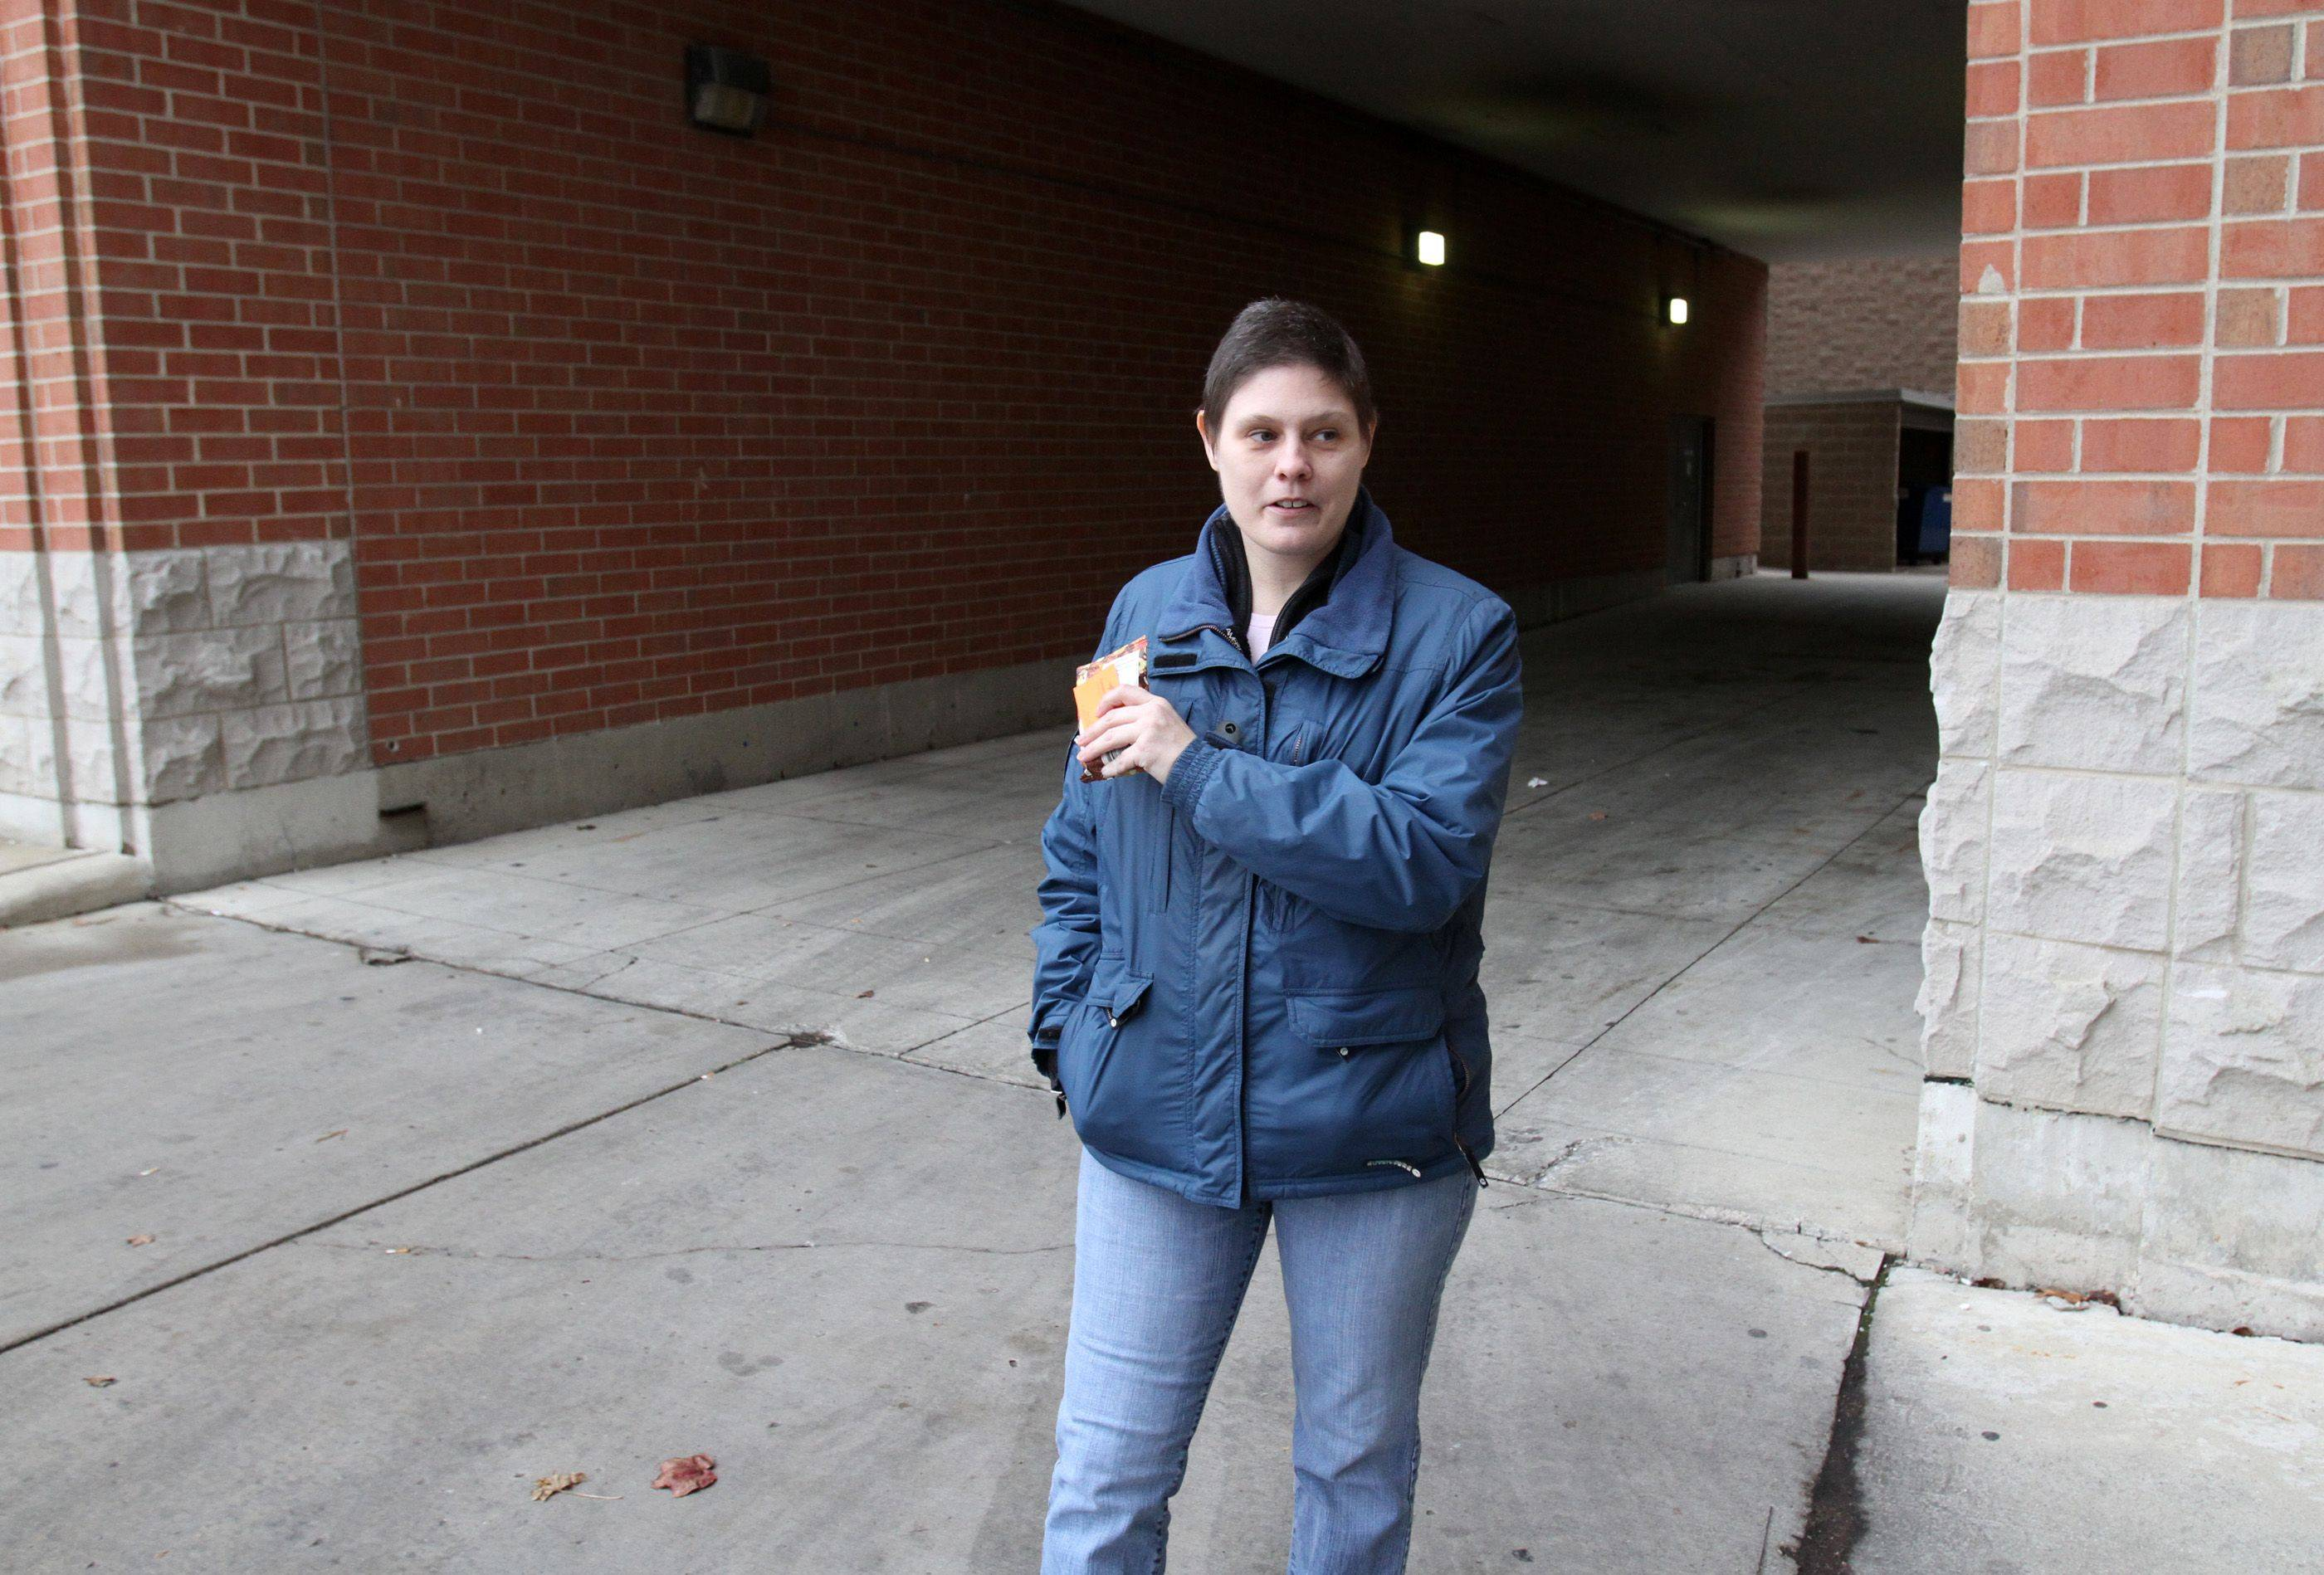 AnnMarie Walsh points out the concrete area, on far right, in the alley near the Vail Avenue parking garage in downtown Arlington Heights where she slept in her sleeping bag during months shelters were not open. Walsh said condominium building residents and retail store owners would leave her food.